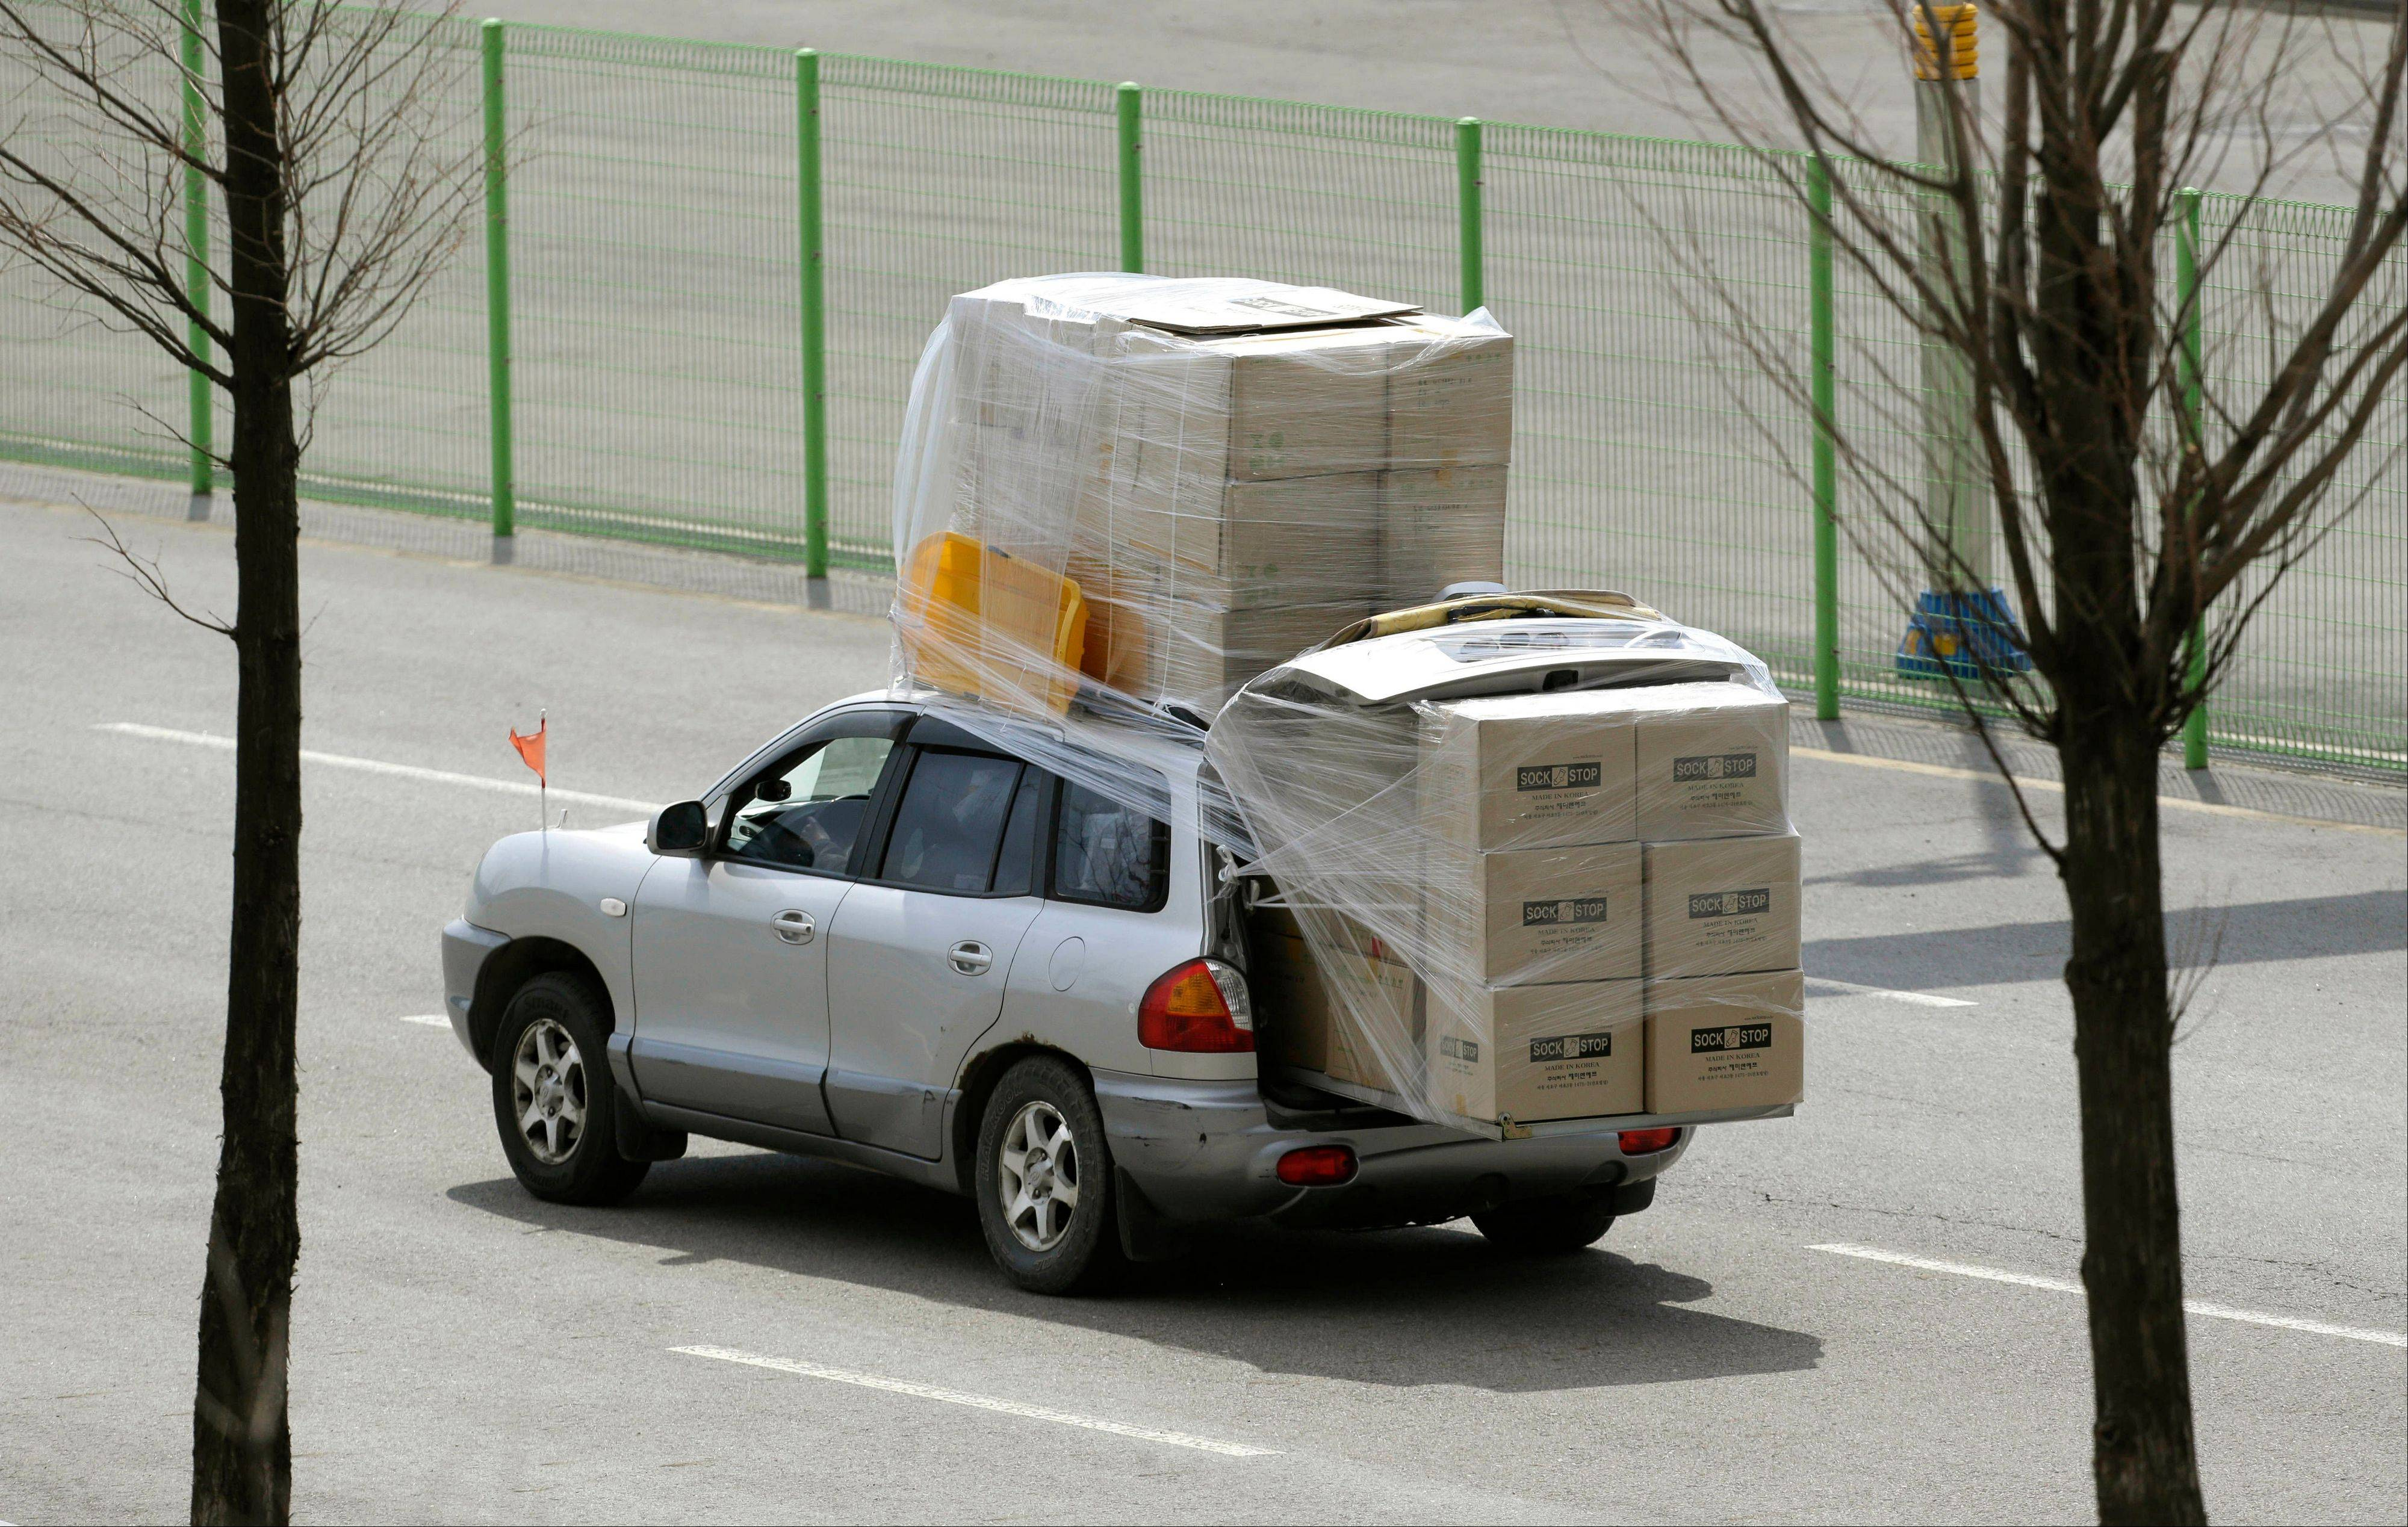 A South Korean vehicle carrying boxes, returning from the North Korean city of Kaesong, arrives at customs near the border that has separated the two Koreas since the Korean War. North Korean workers didn't show up for work at the Kaesong industrial complex, a jointly run factory with South Korea on Tuesday, a day after Pyongyang suspended operations at the last remaining major economic link between rivals locked in an increasingly hostile relationship. Some managers stuffed their cars full of finished goods before heading south across the Demilitarized Zone that divides the nations.